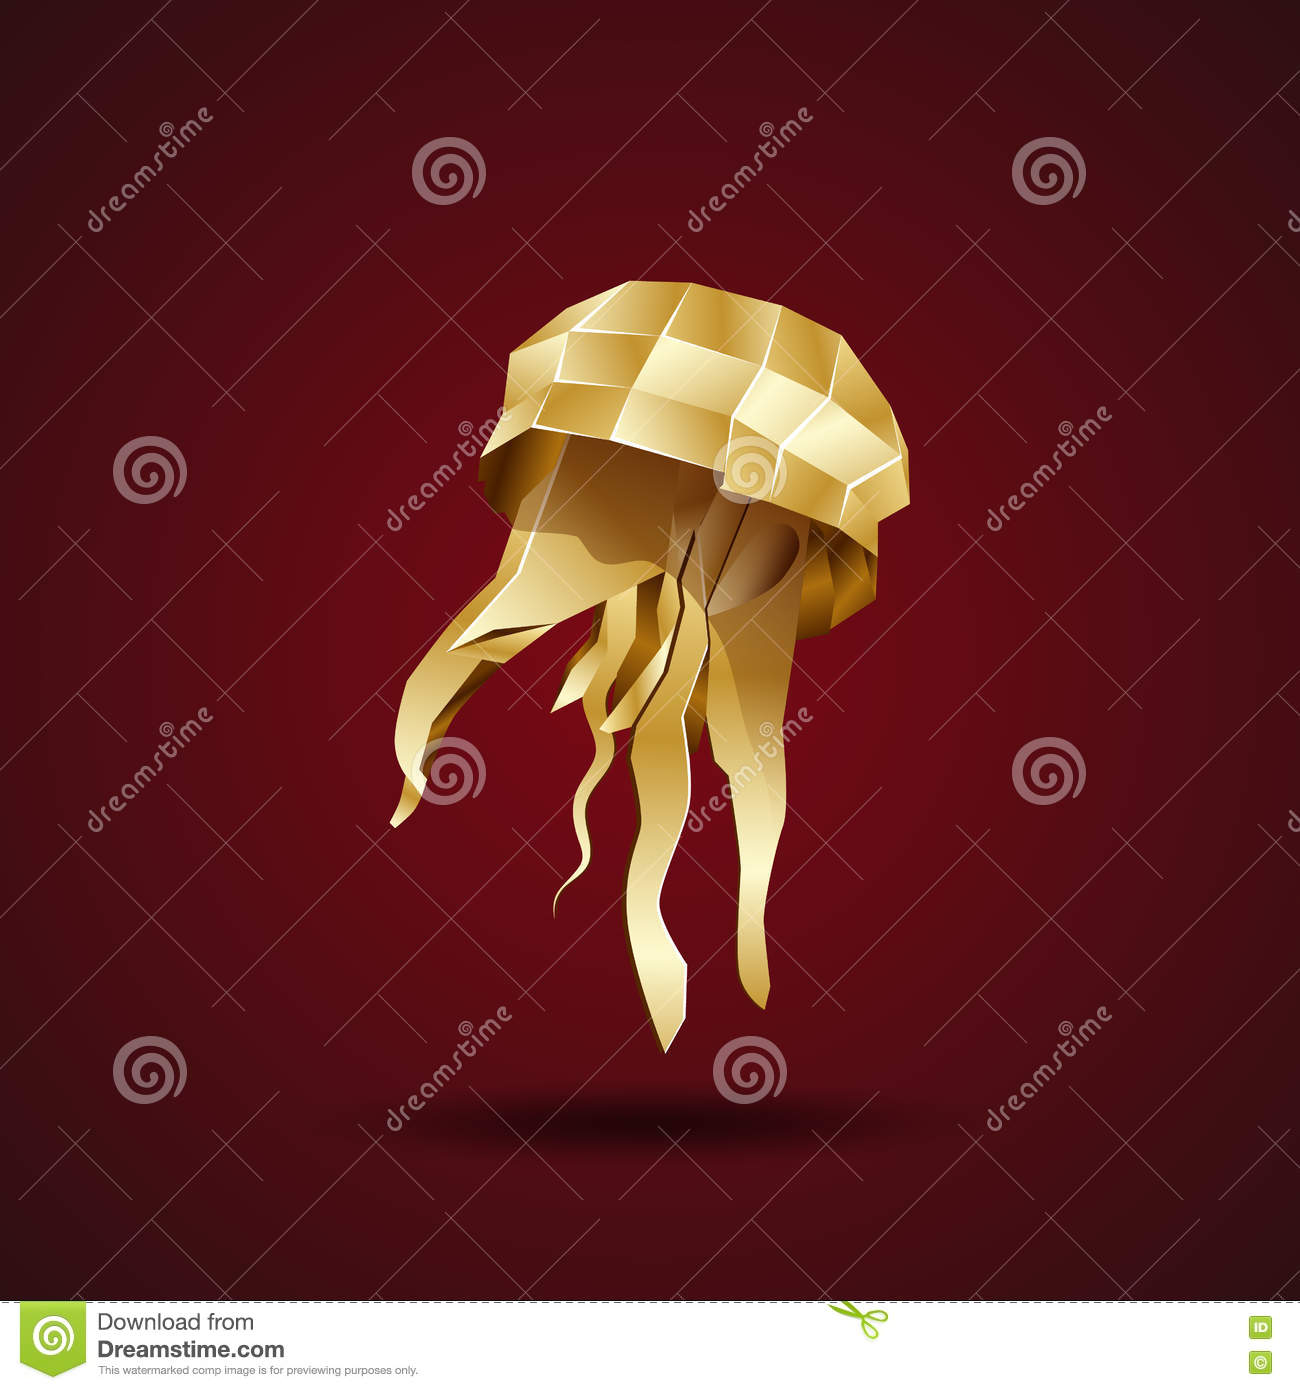 Golden origami jellyfish stock vector. Illustration of coral - 73621160